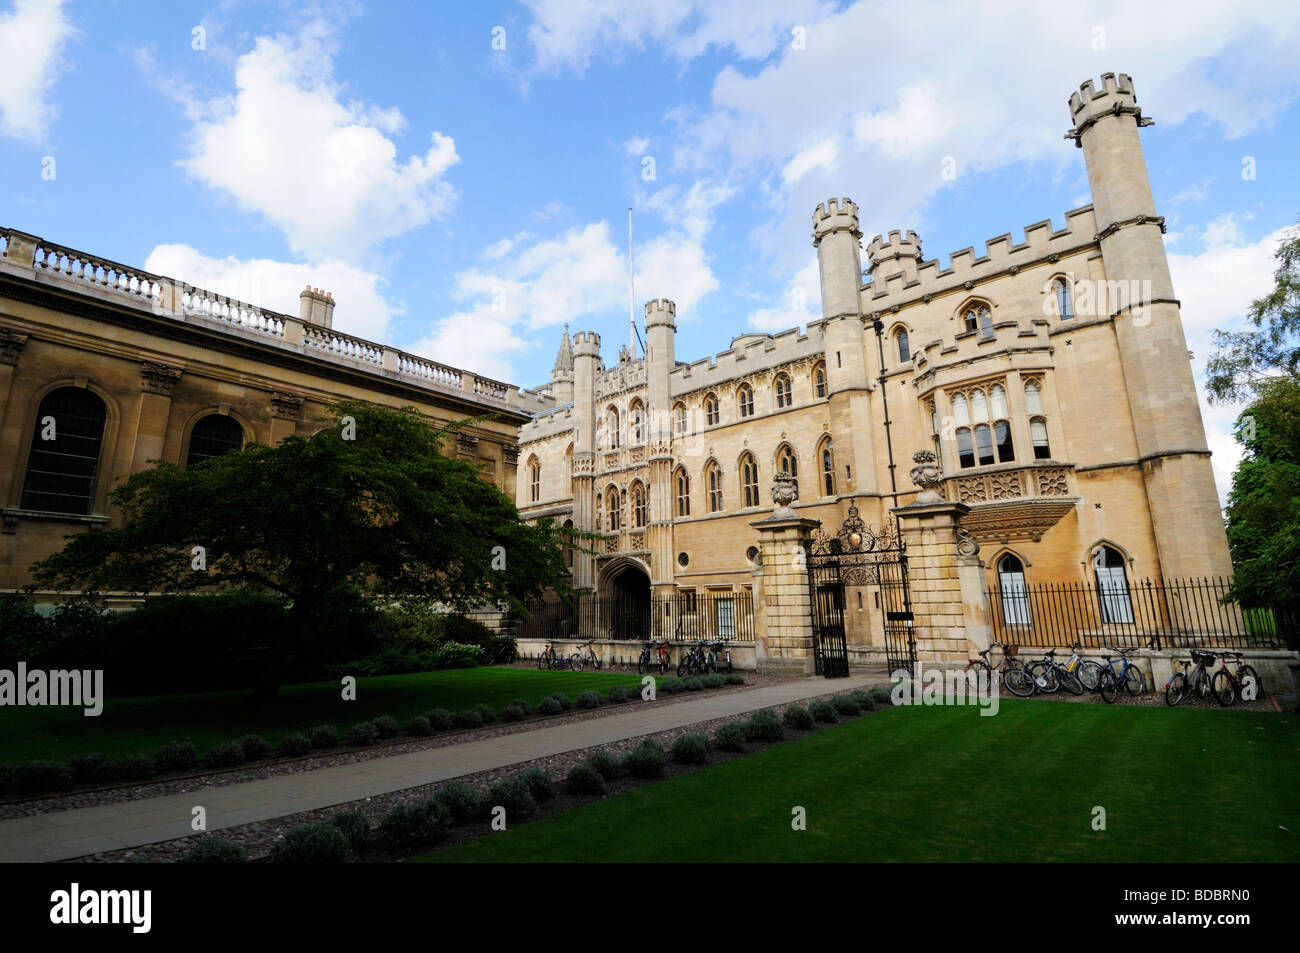 The Old Schools University Offices building and Clare College, Cambridge England UK - Stock Image